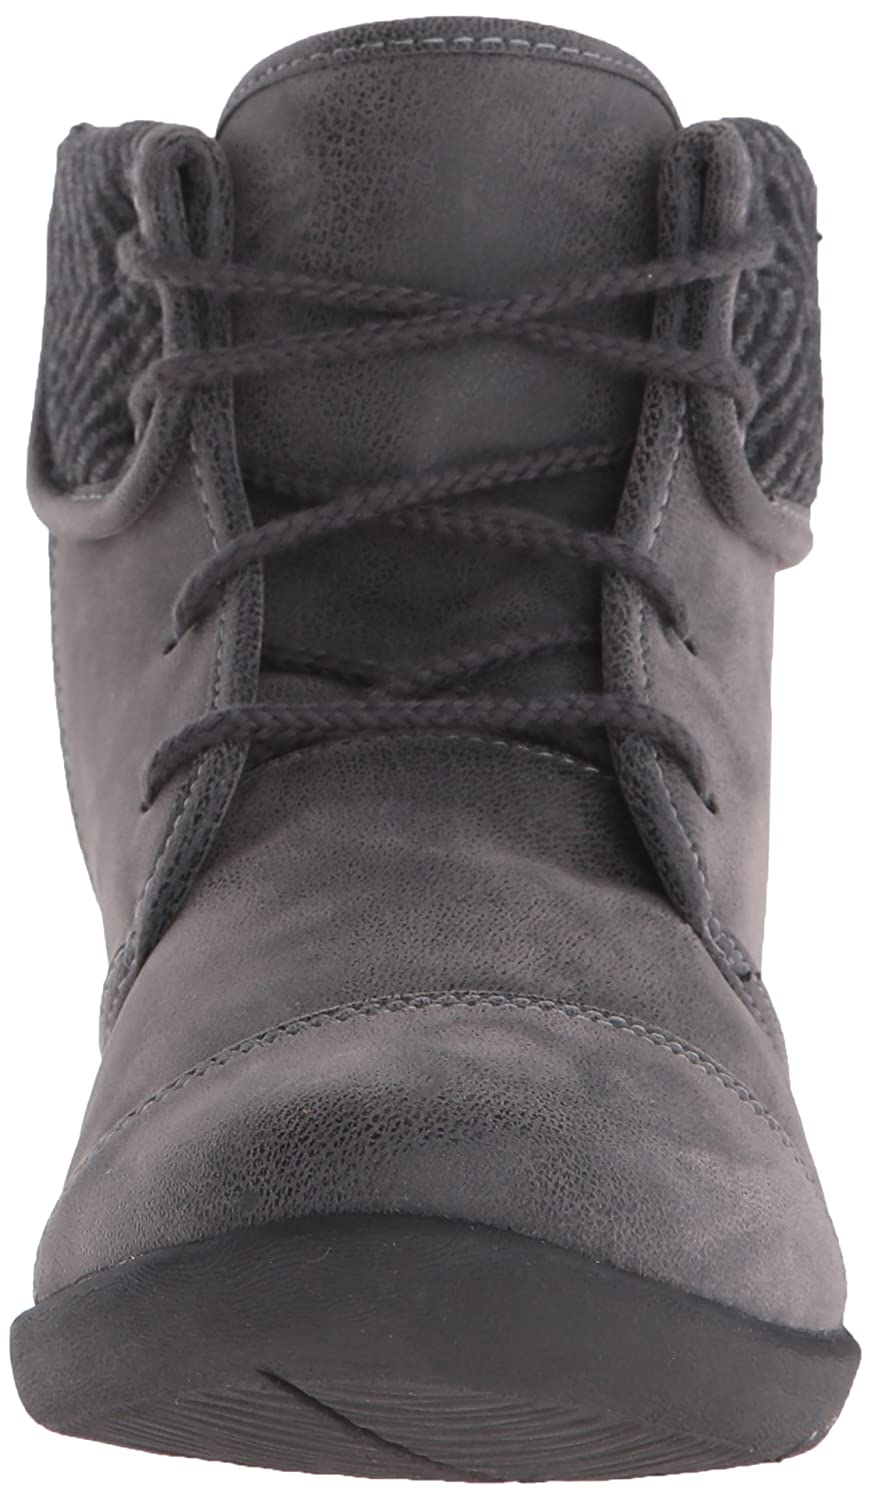 Clarks Womens Sillian Frey Boot